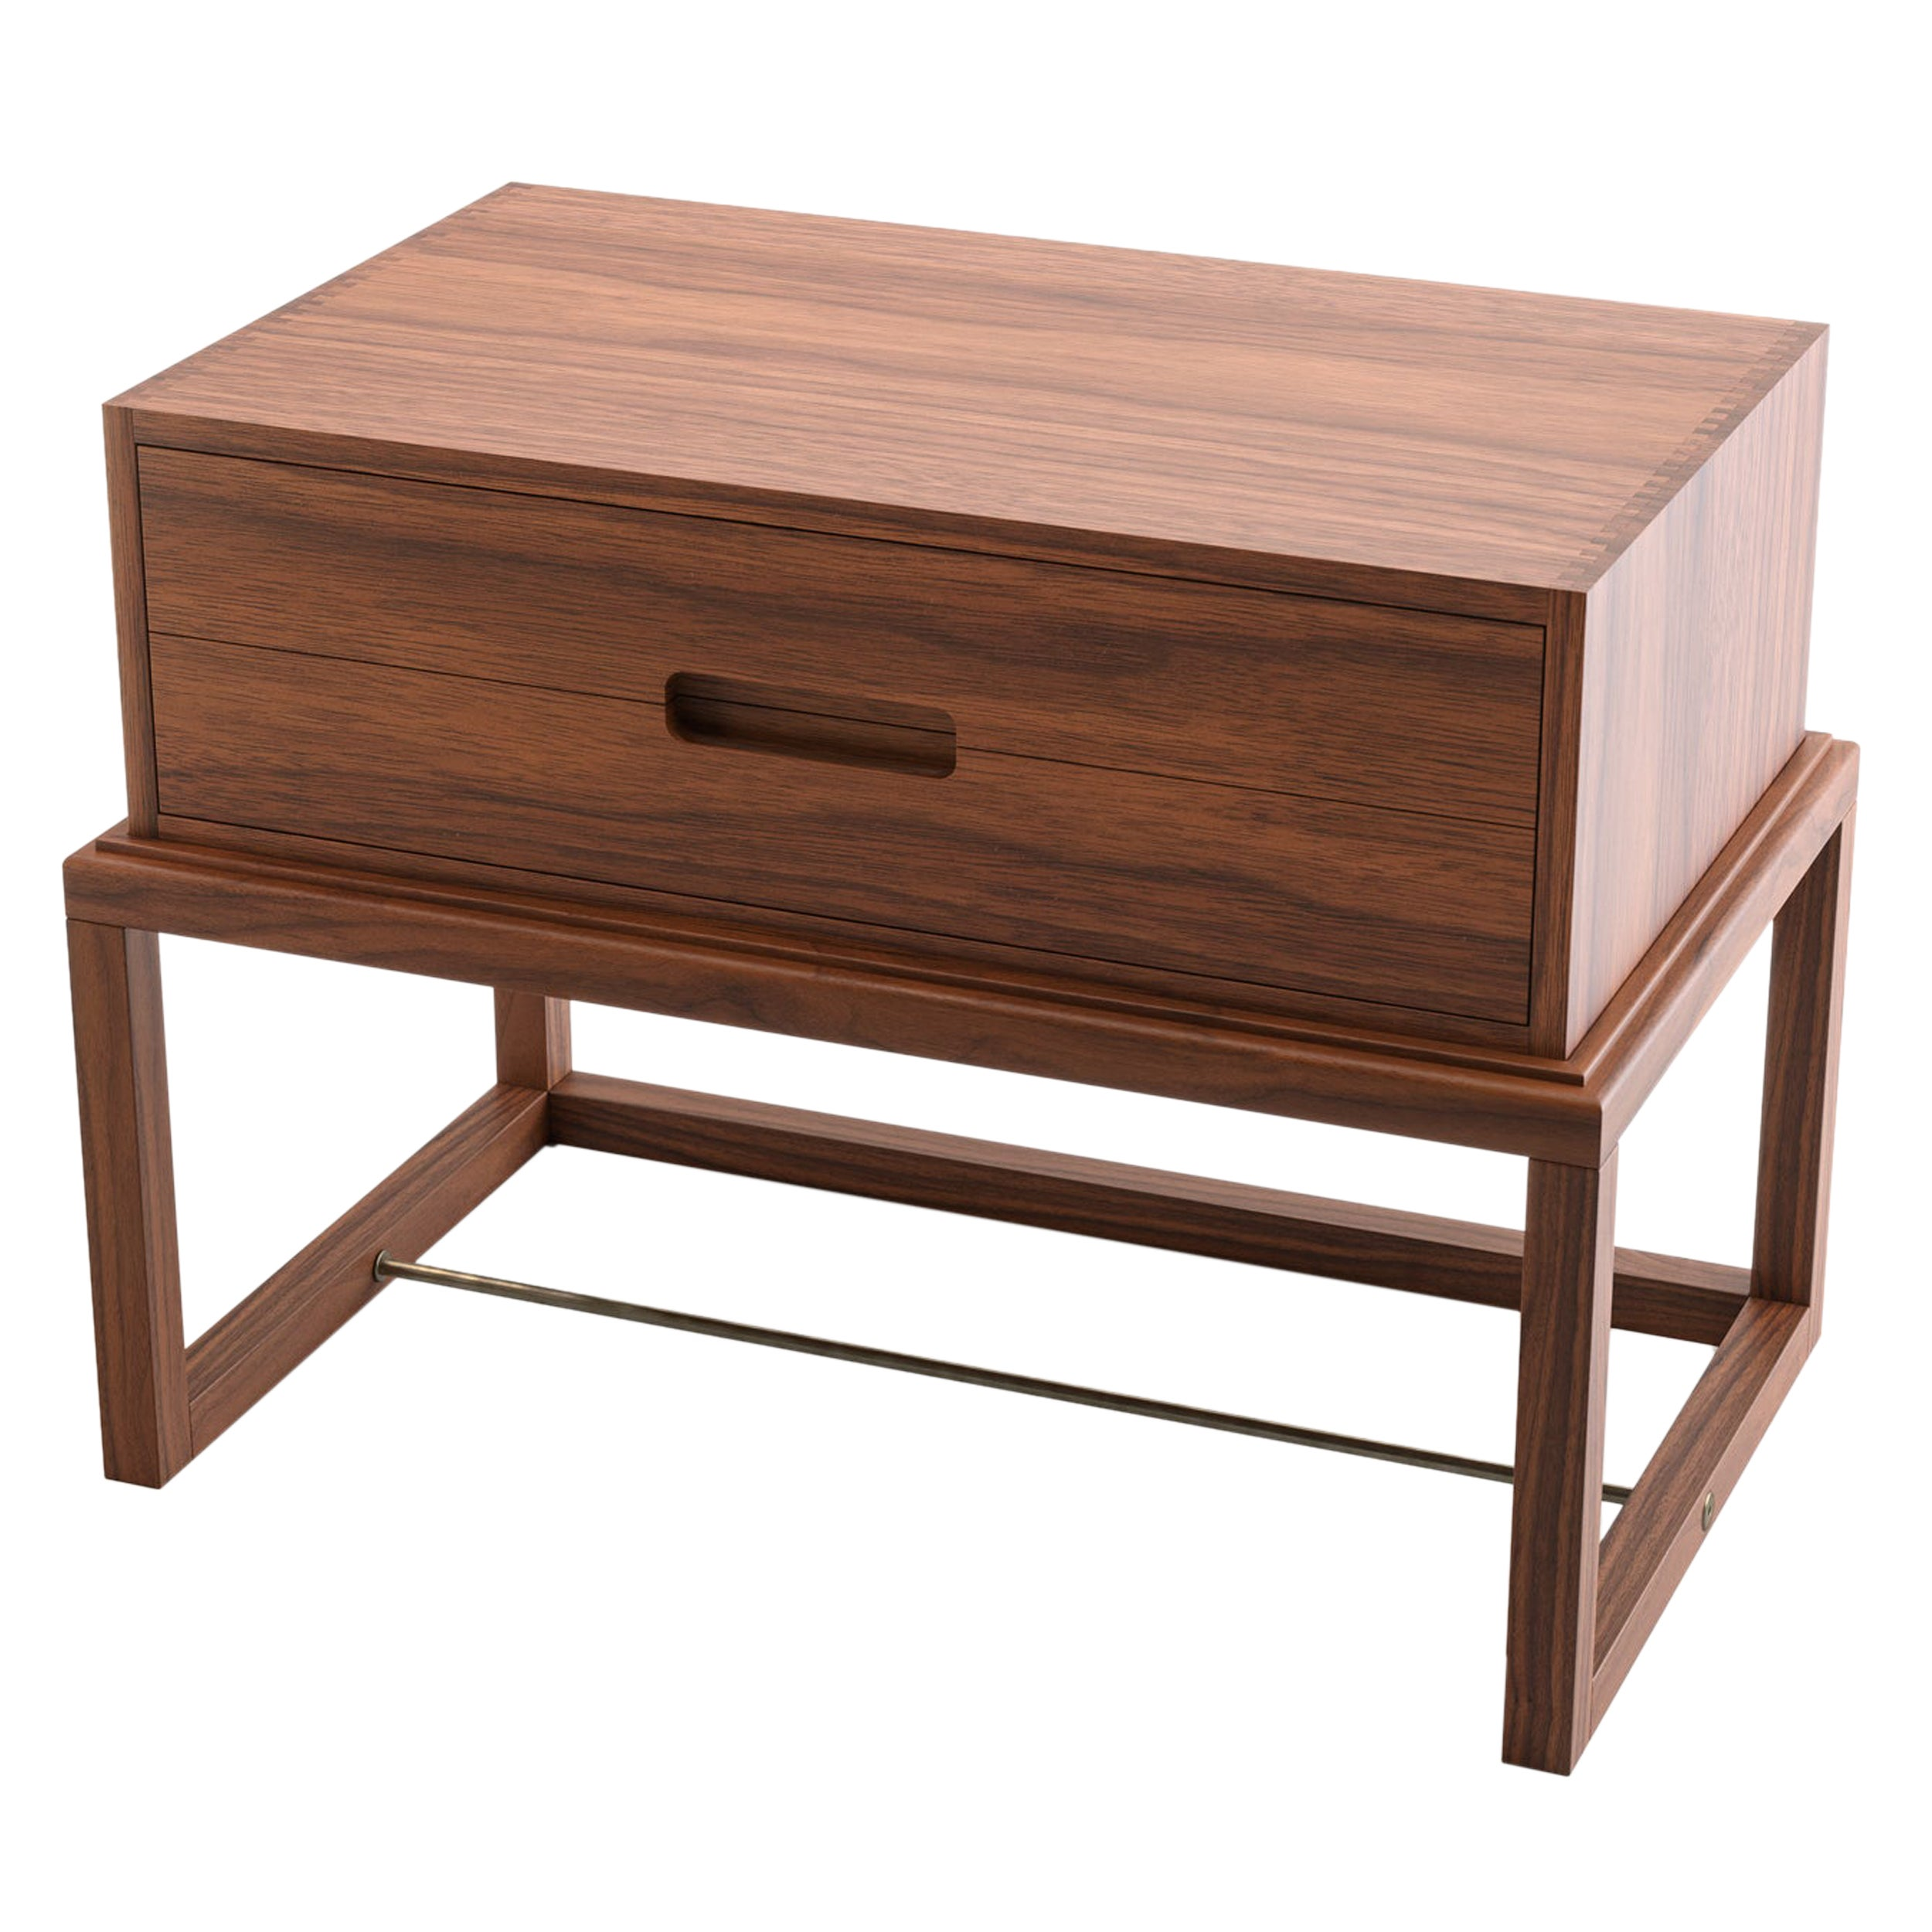 Oona Bedside or Side Table in Medium Walnut with Antique Brass Fittings